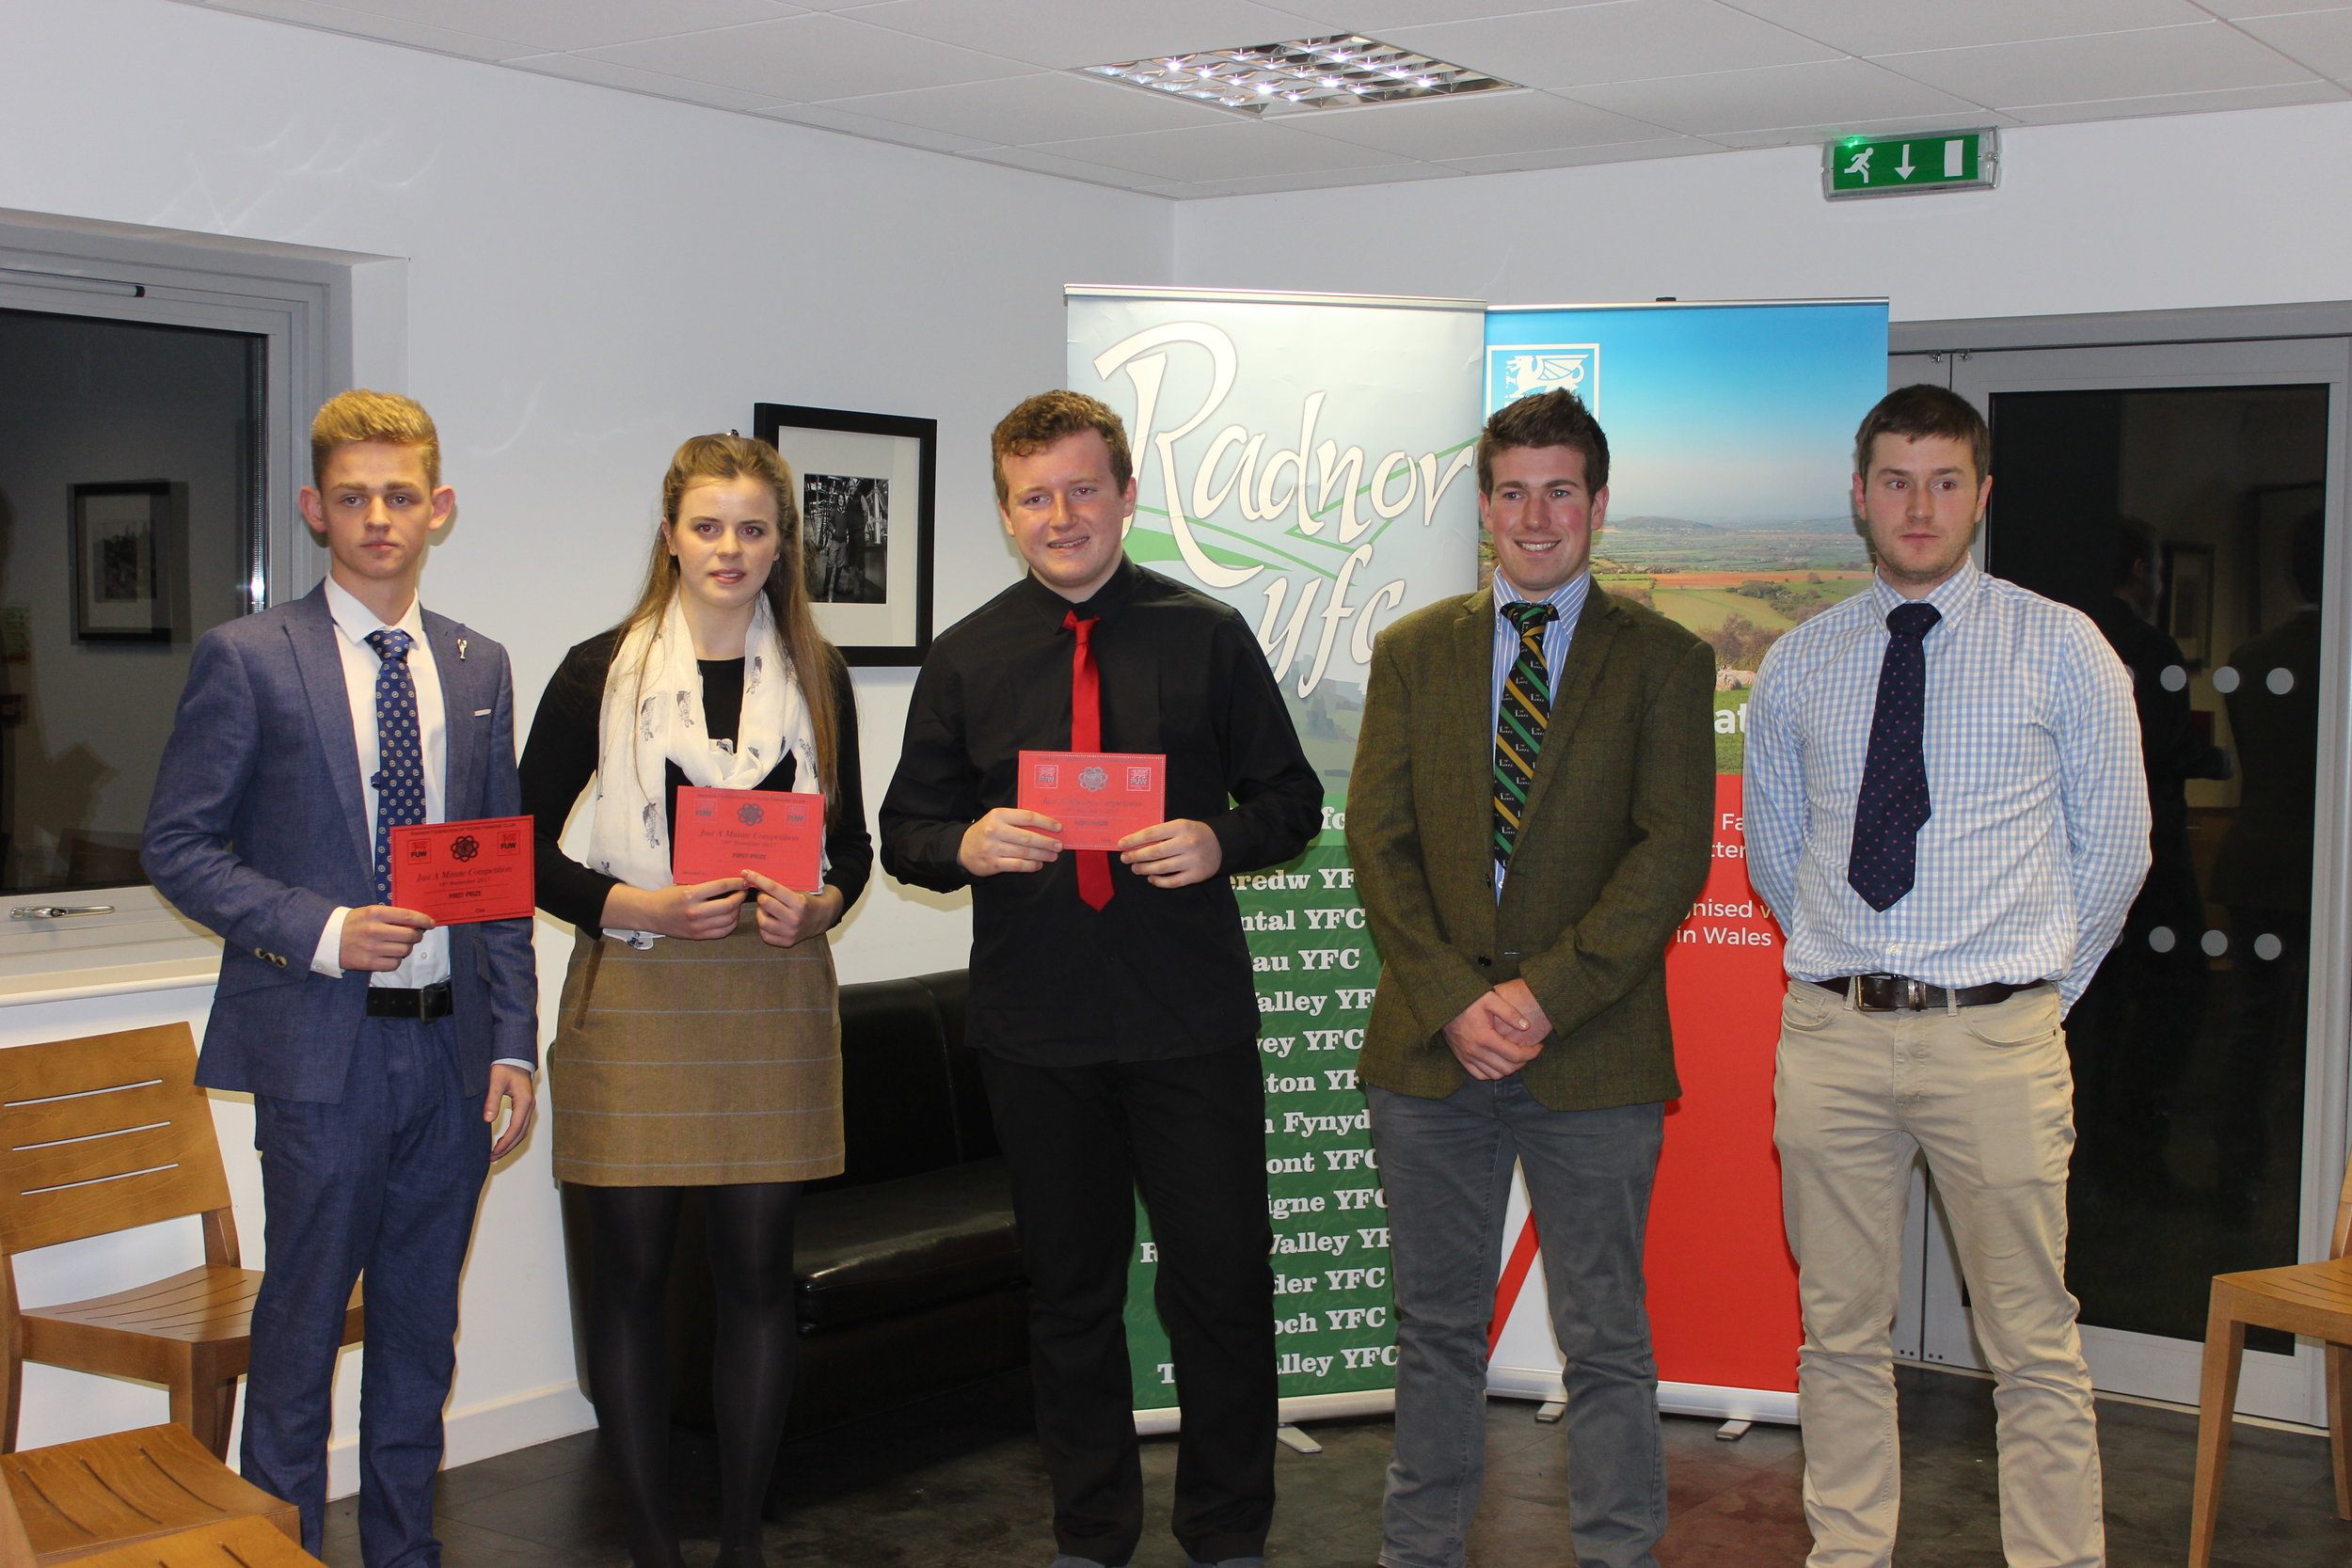 Ben Chilman & Elizabeth Preston, Presteigne YFC & Teddy Mitchell, Edw Valley YFC winning the Just A Minute Competition with judges Joe Williams & Mark Hanson.